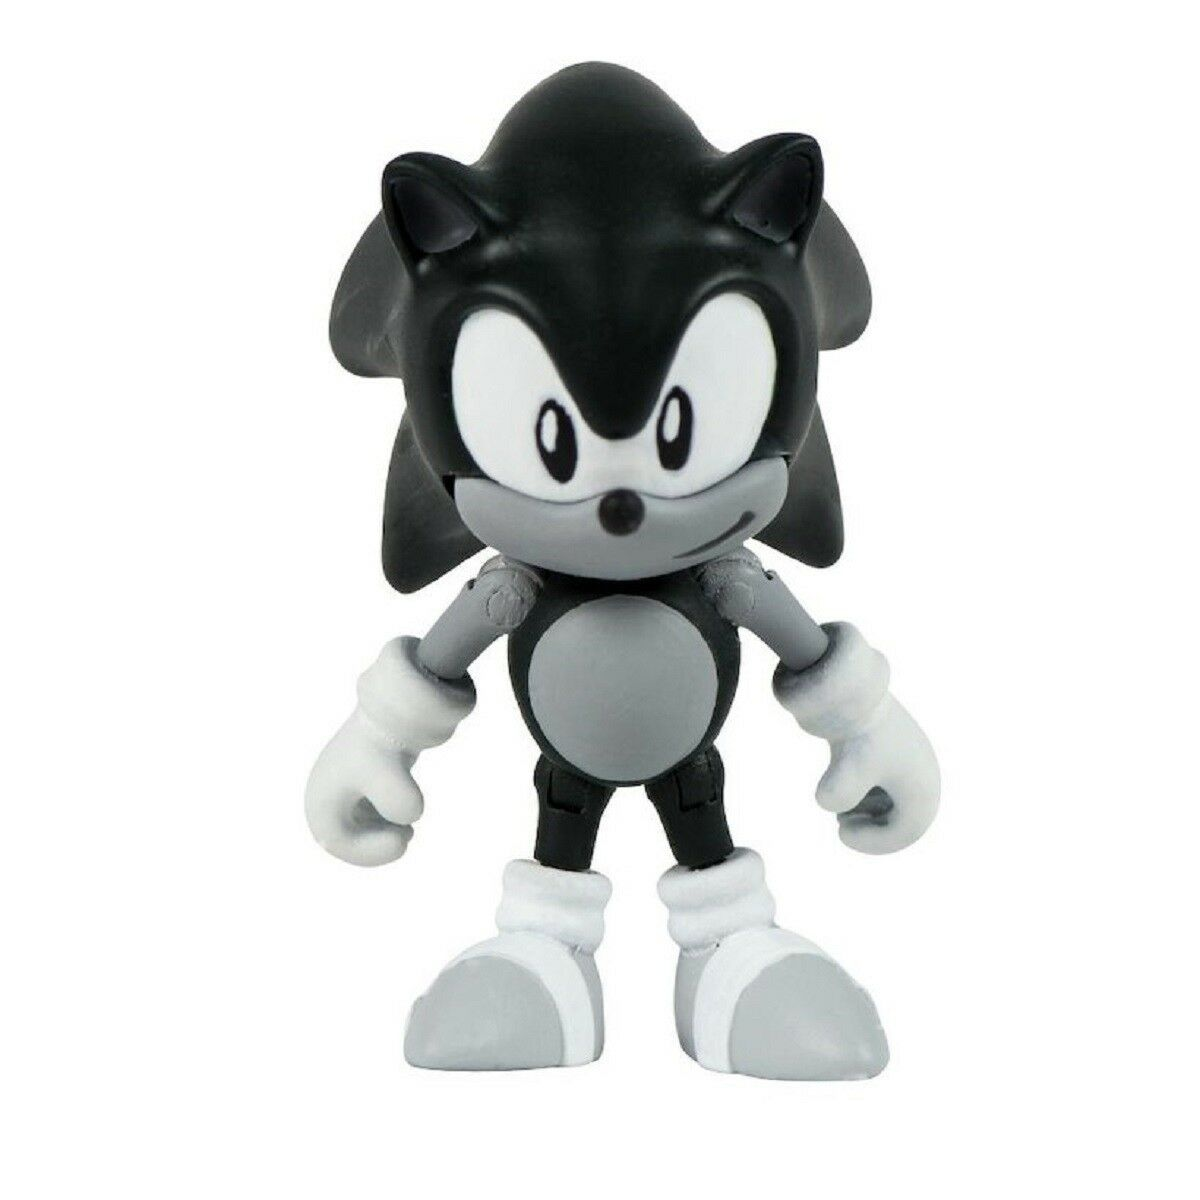 Action Figure Toy Sonic The Hedgehog Classic Sonic Black And White Walmart Com Walmart Com